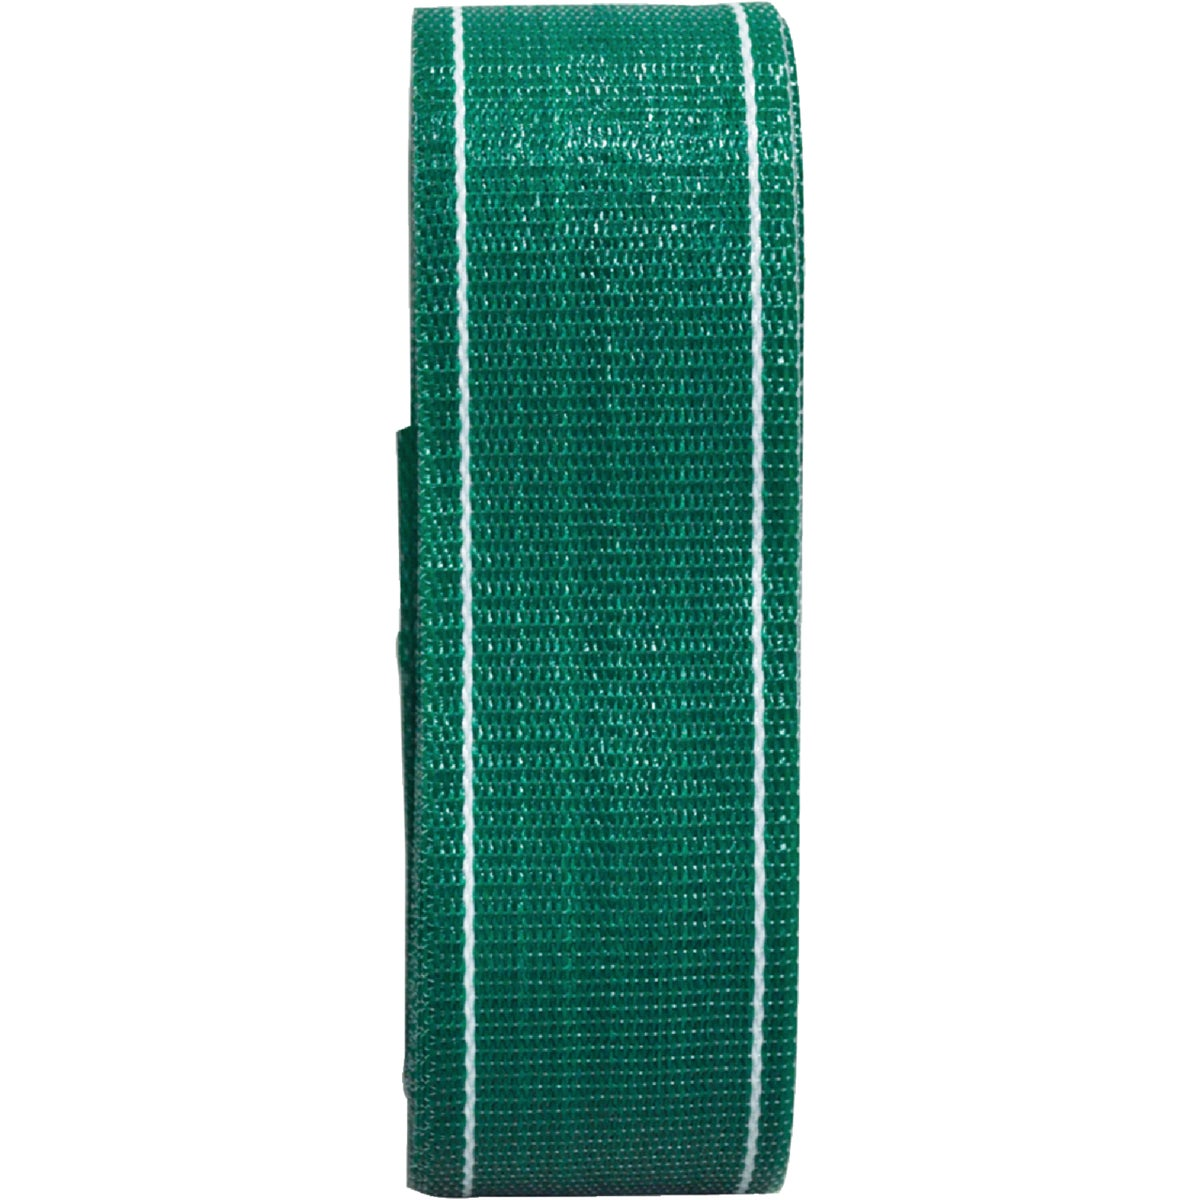 39' GREEN WEBBING - PW39G by Thermwell Prods Co